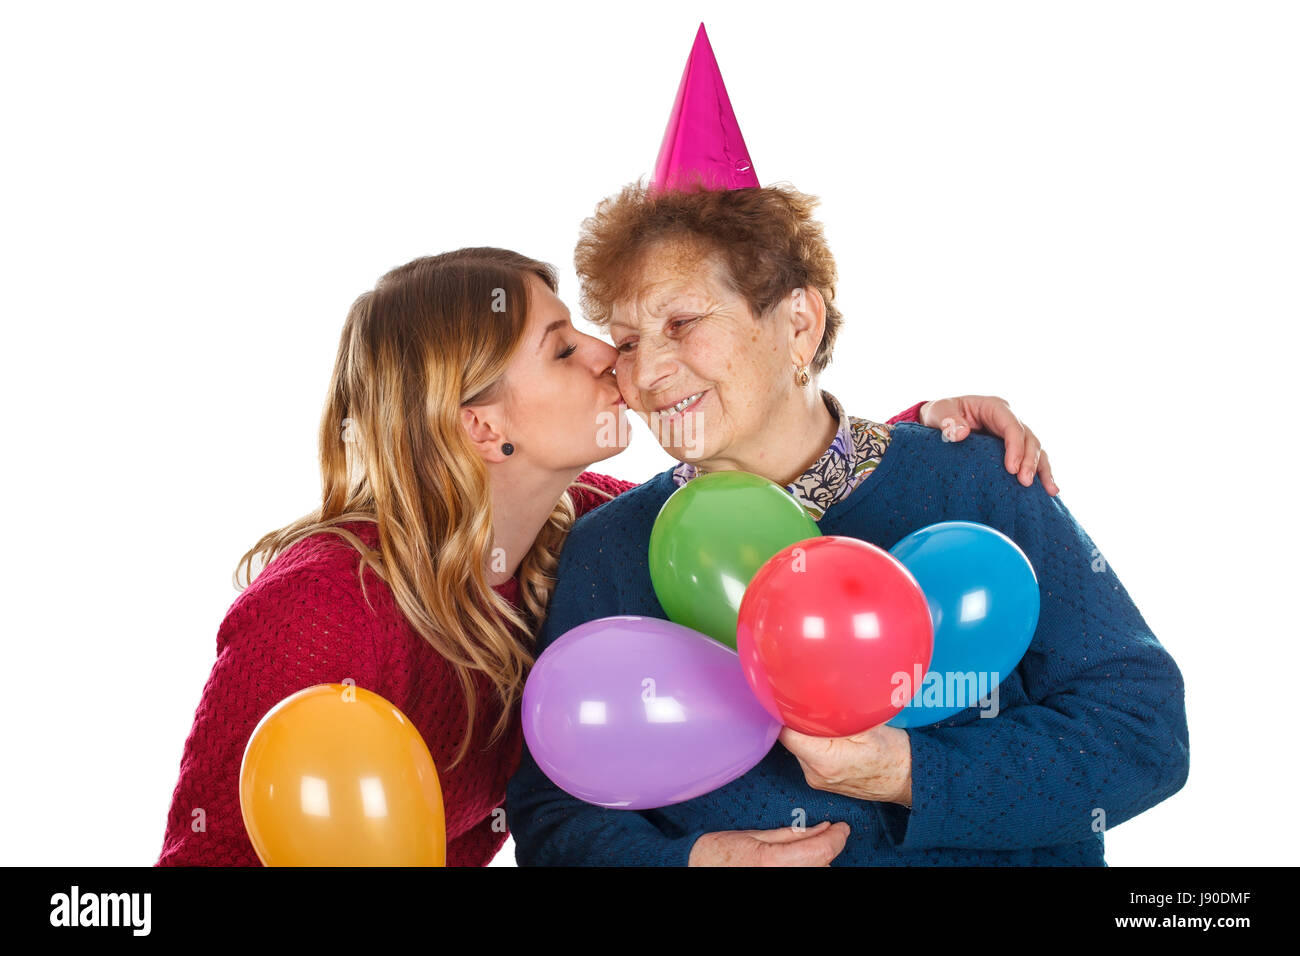 Picture of a senior lady celebrating birthday with her granddaughter - Stock Image